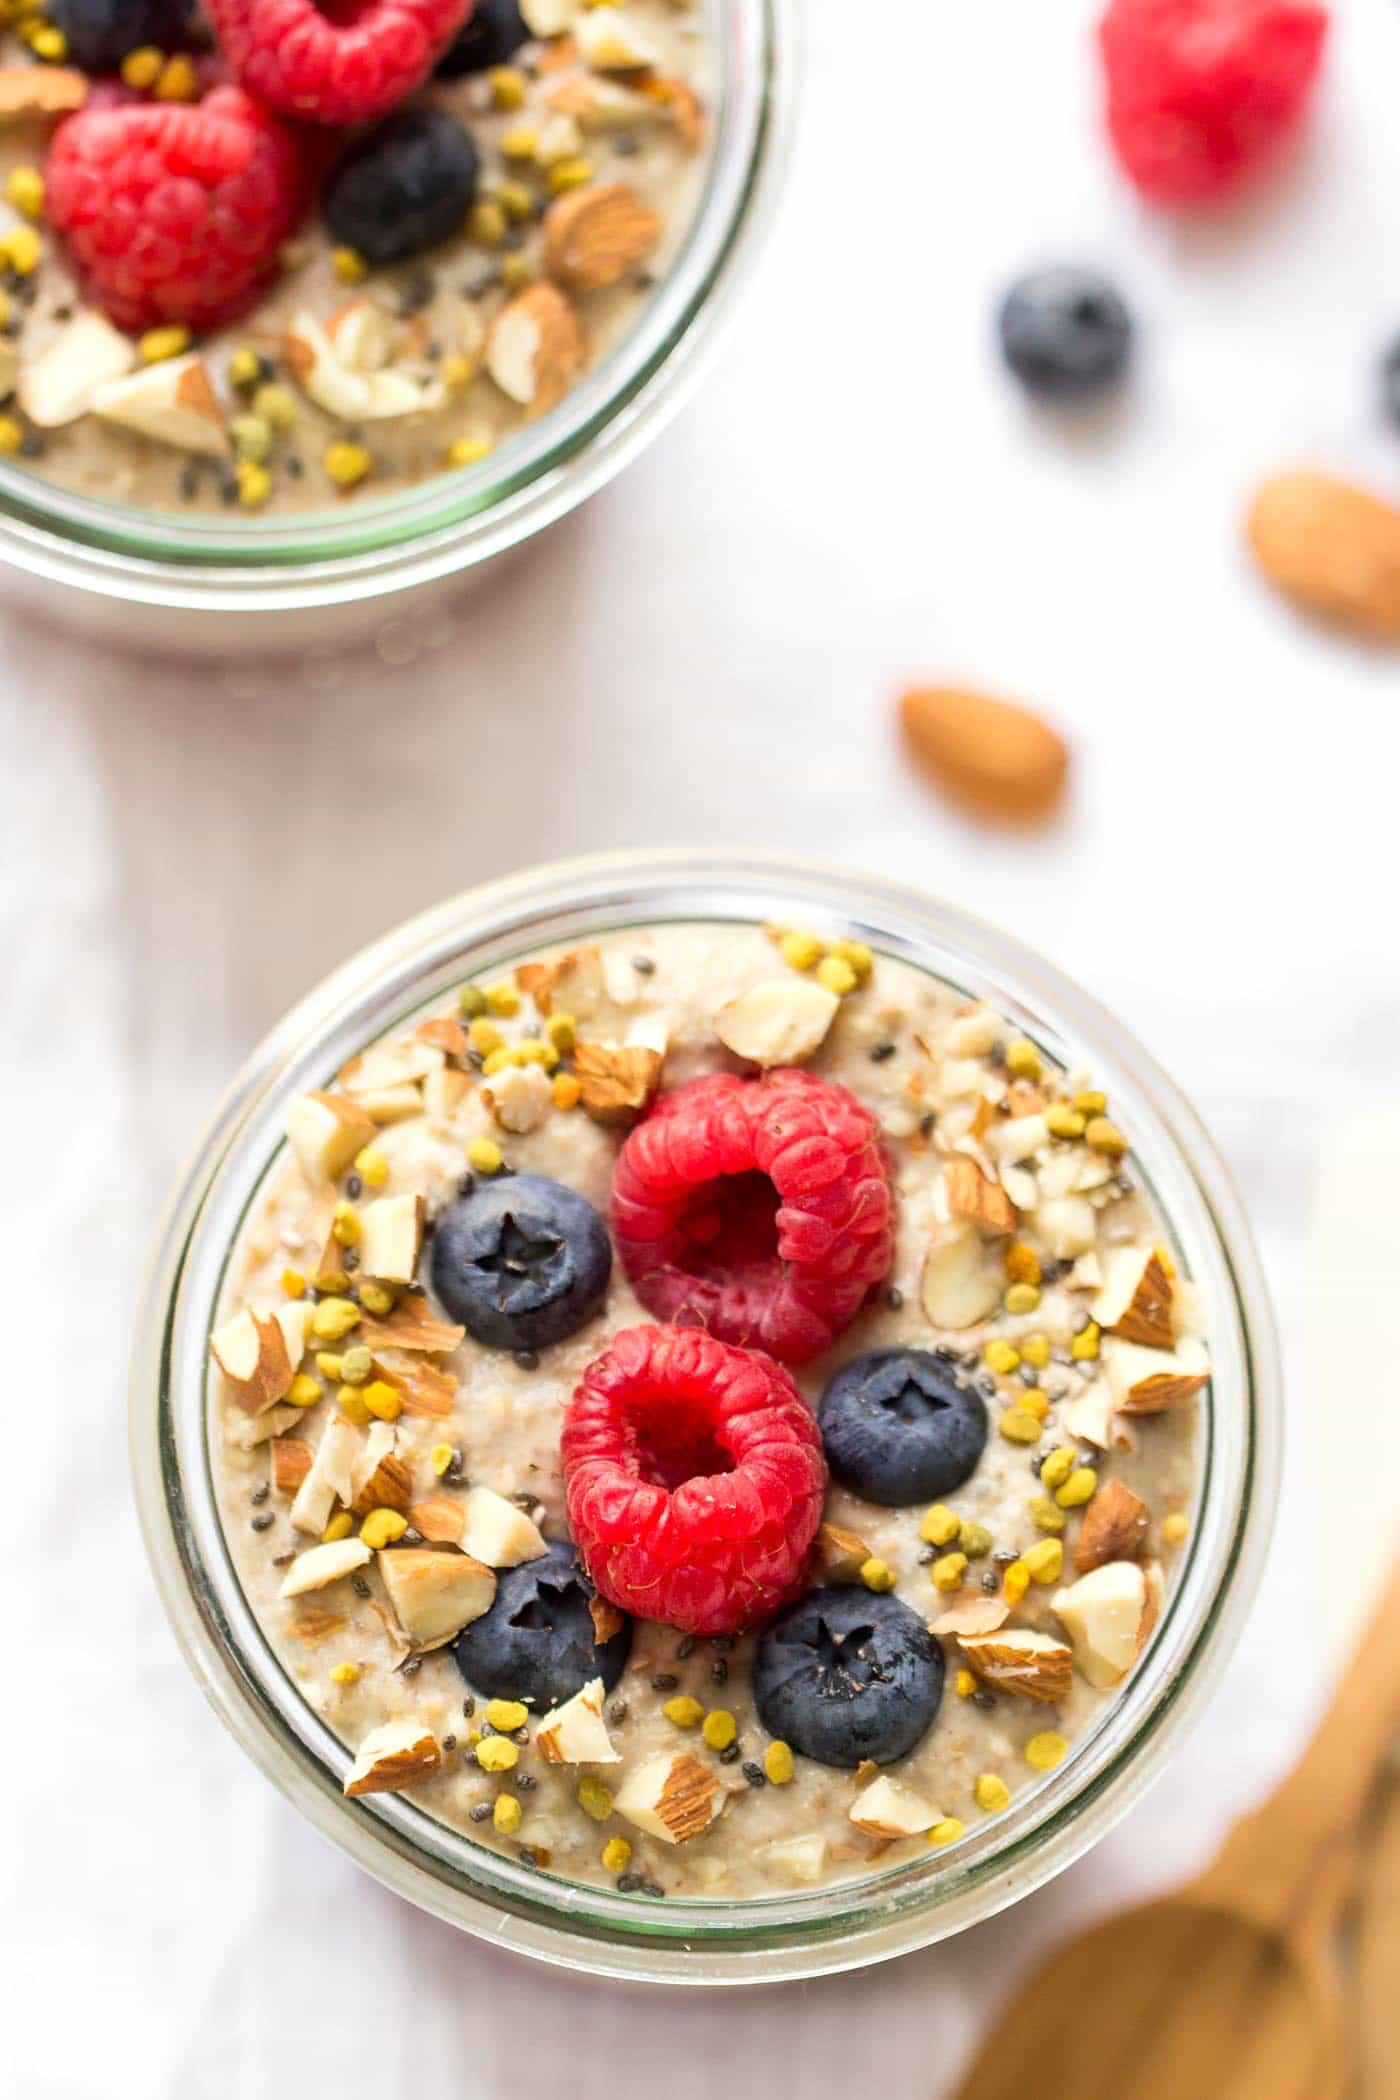 This AMAZING quinoa porridge is completely raw but totally delicious - packed with fiber, protein and low in sugar!